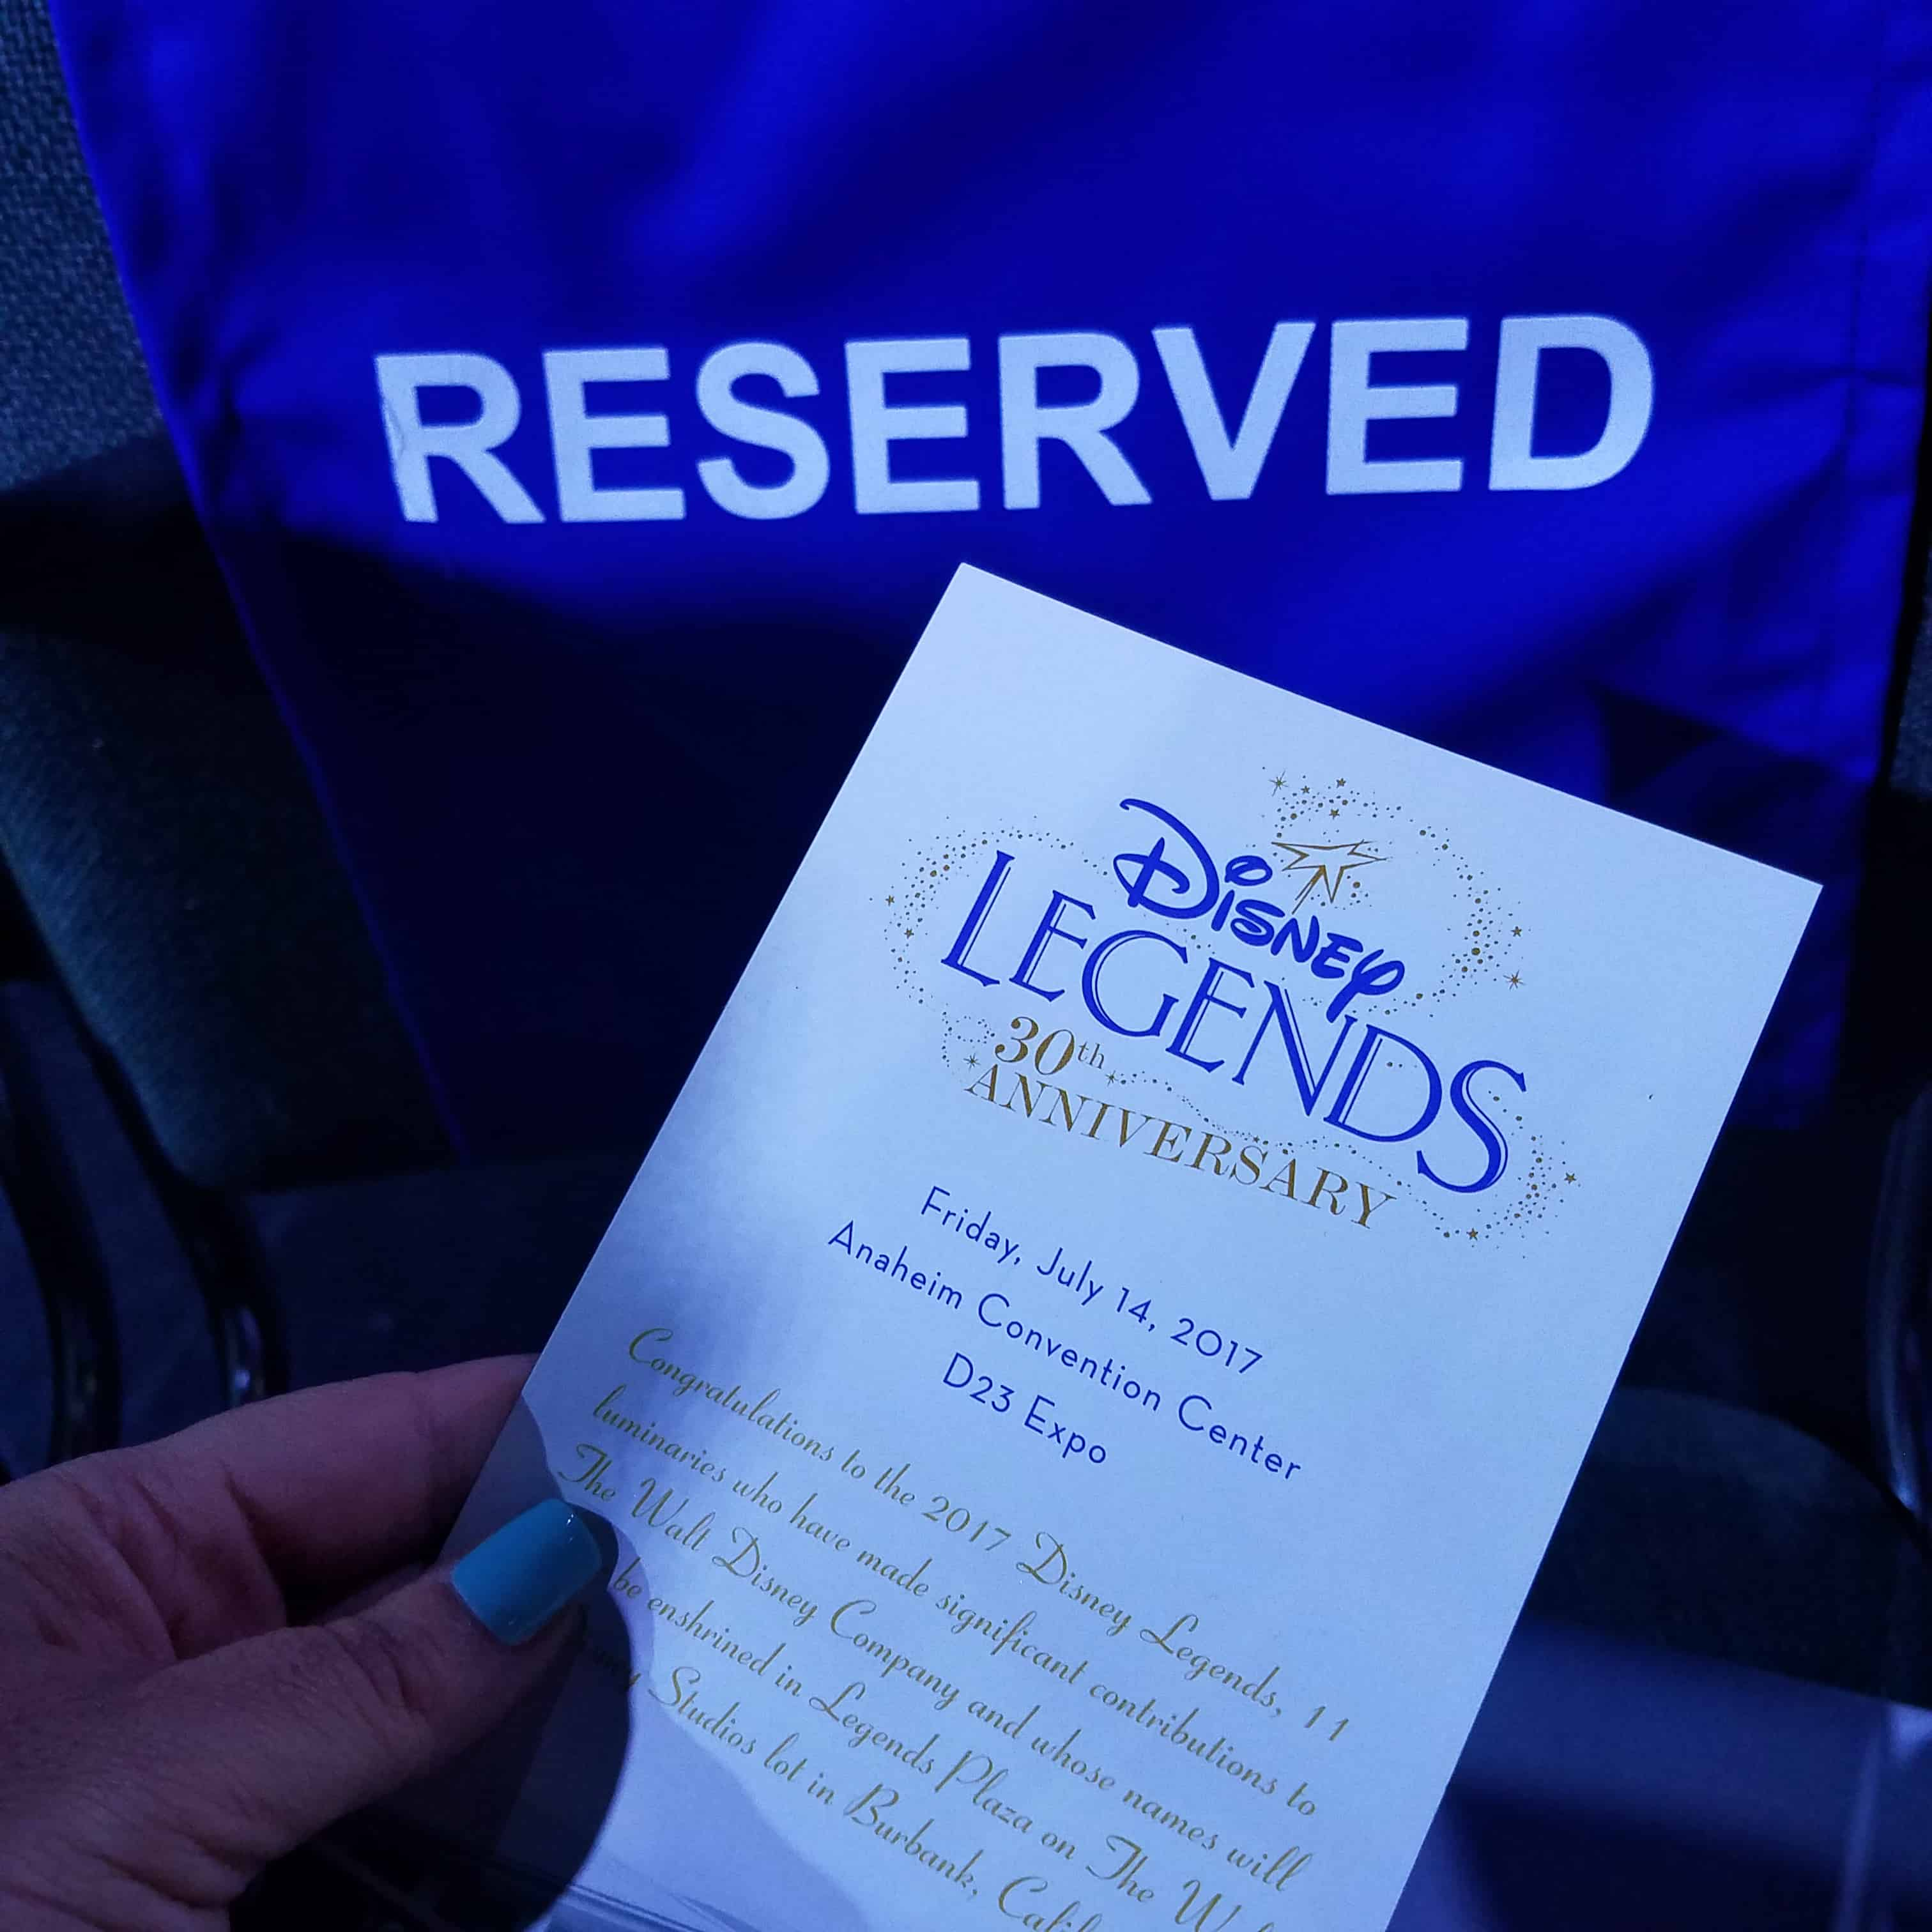 D23 Expo Walt Disney Legends Awards Ceremony